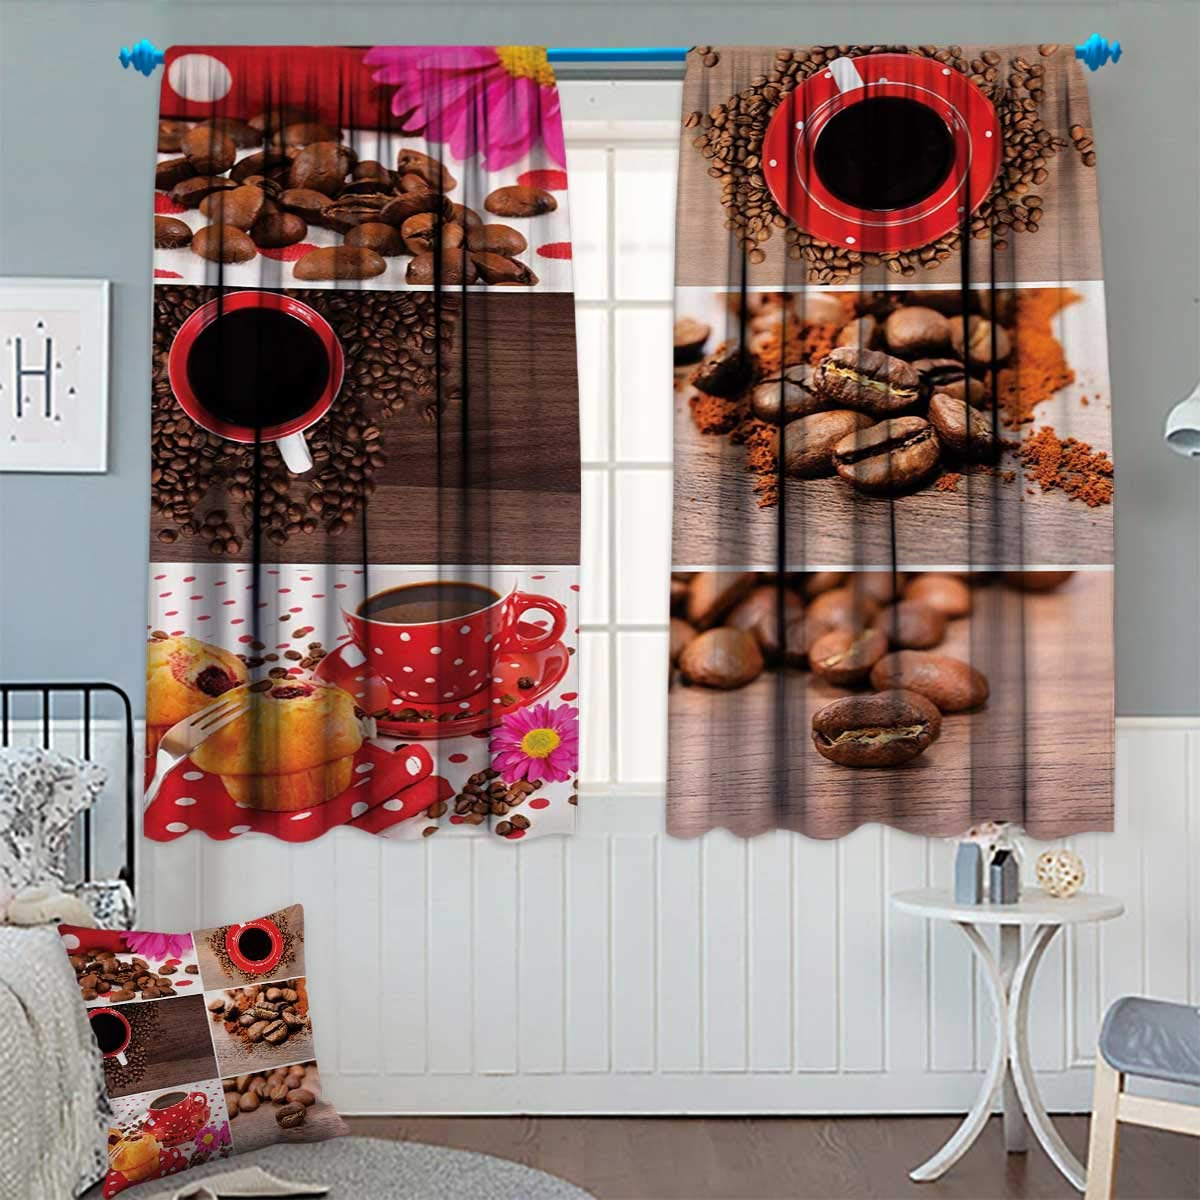 "Kitchen Room Darkening Curtains Coffee Themed Collage of Mugs Polka Dots Flowers Beans Muffins Close Up Photography Decor Curtains by 55"" W x 45"" L Brown Red"